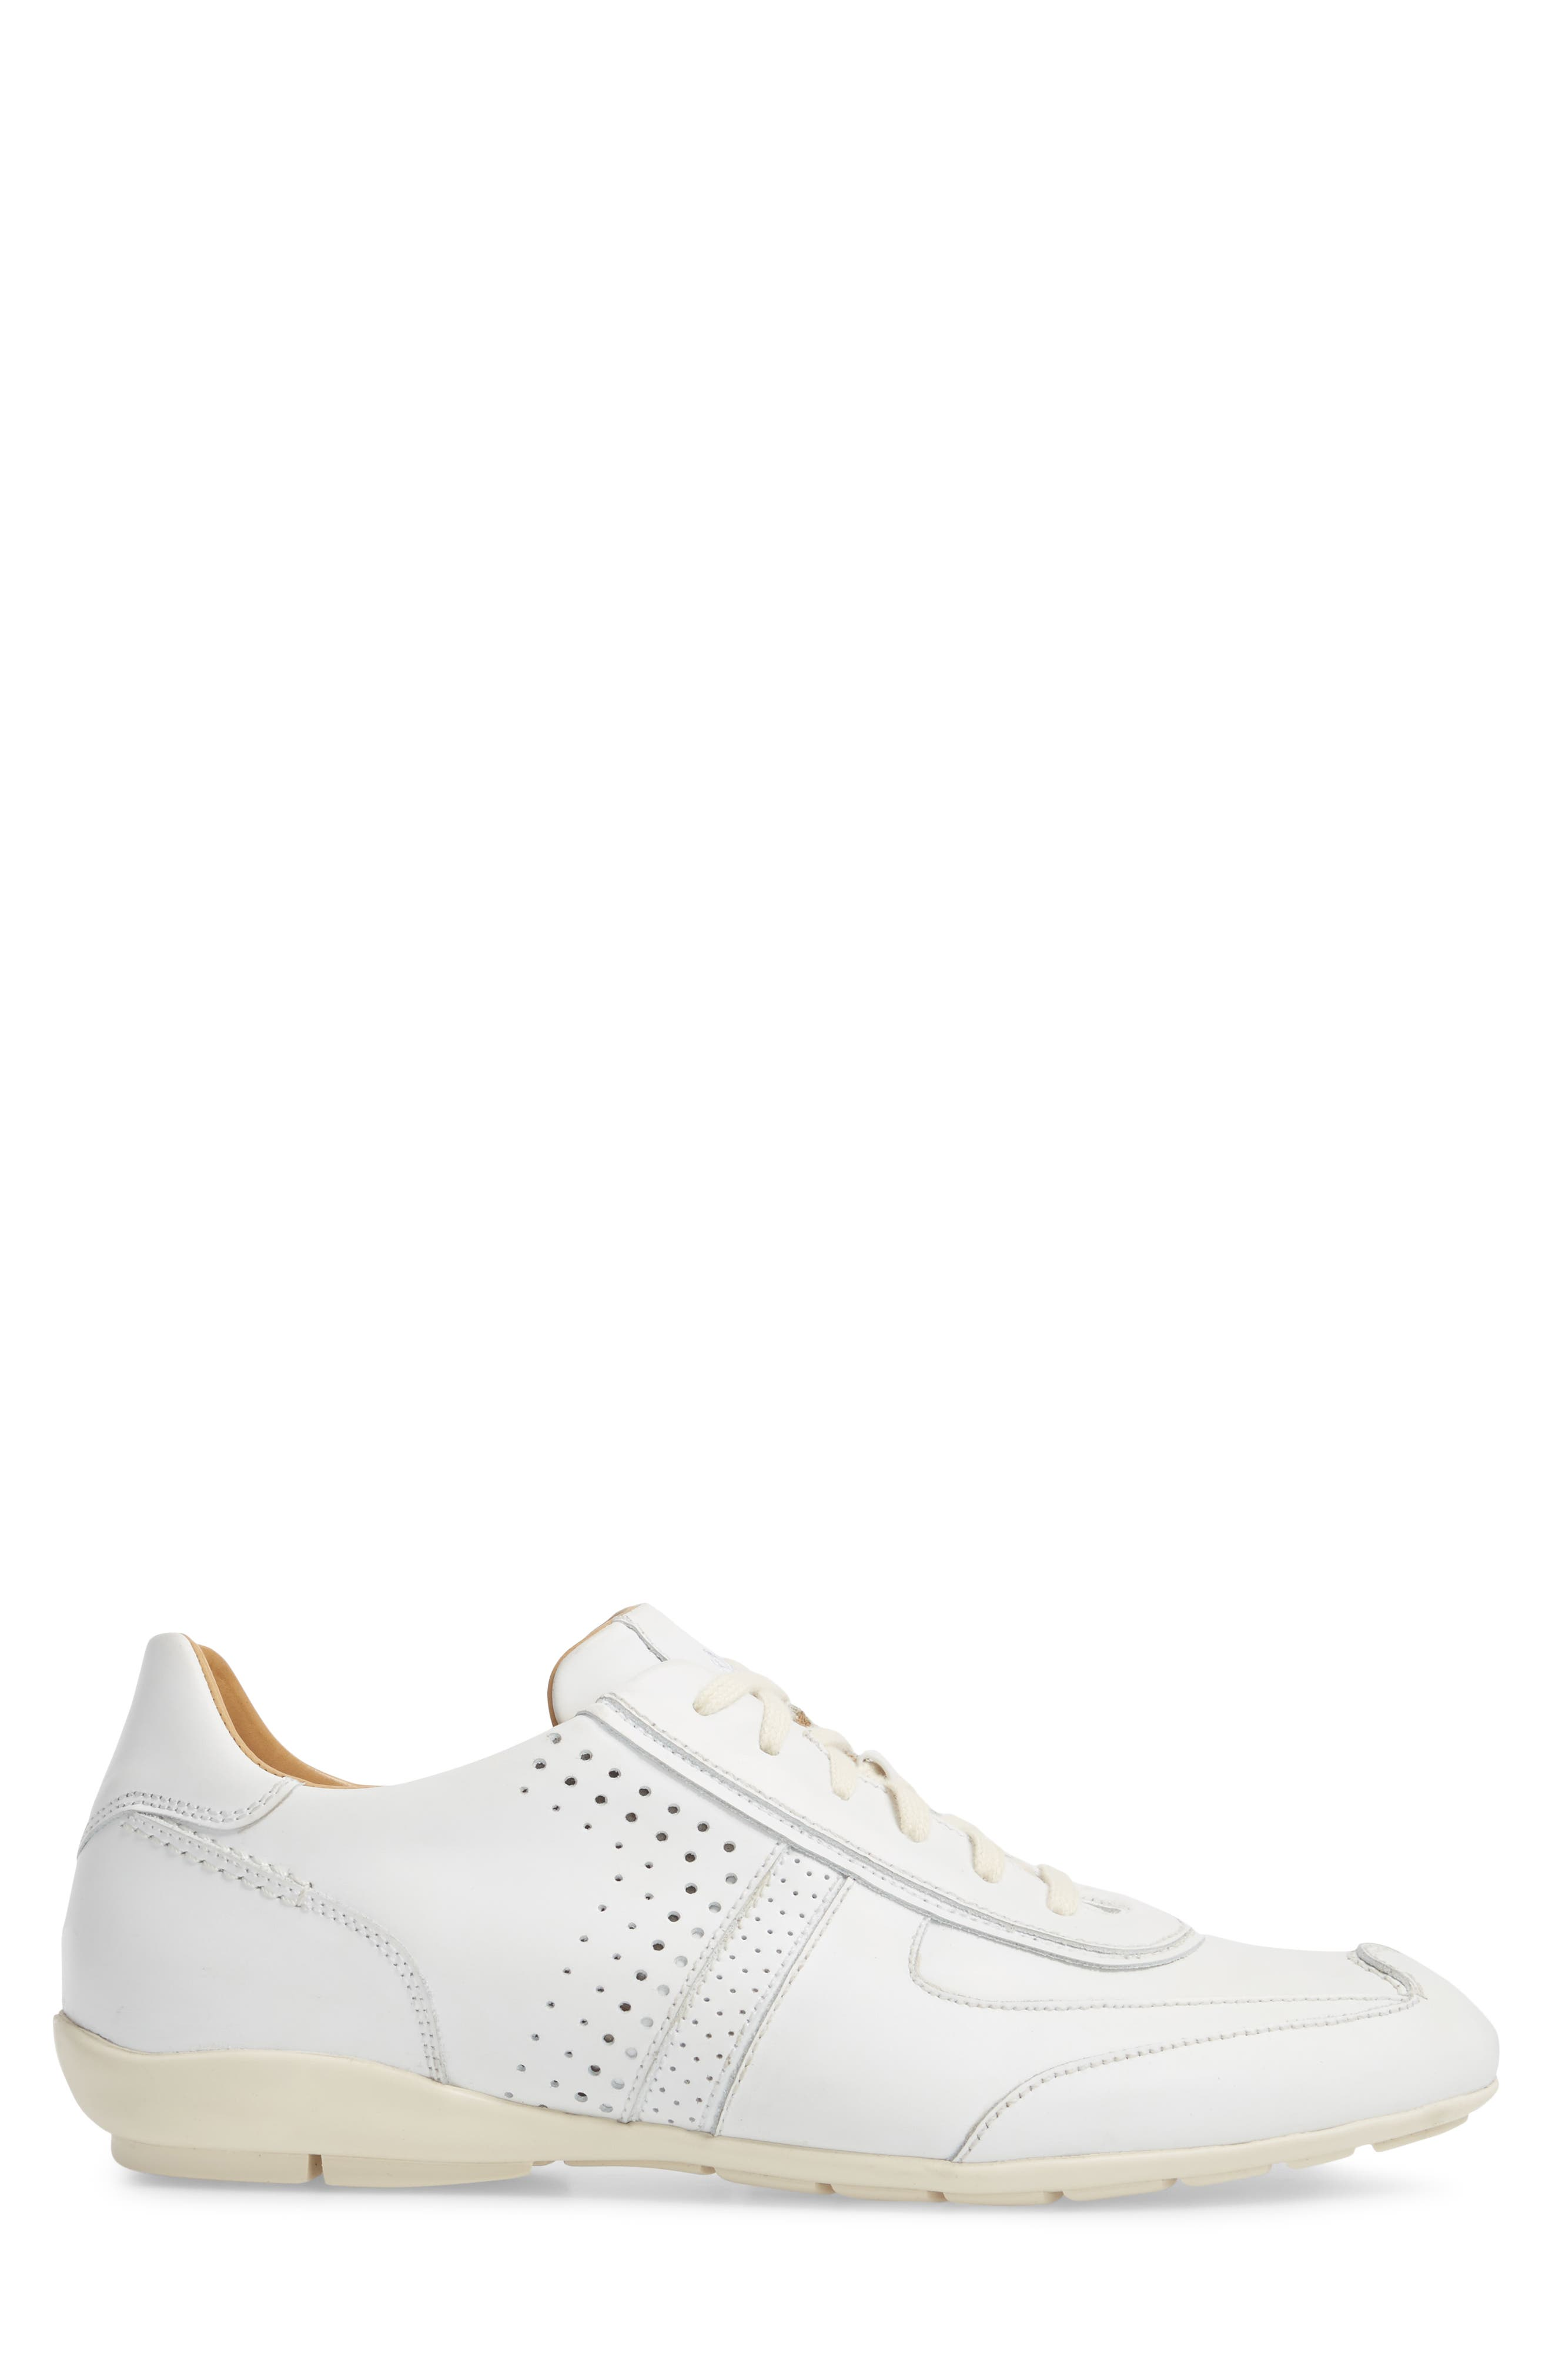 Lozano II Low Top Sneaker,                             Alternate thumbnail 3, color,                             WHITE LEATHER